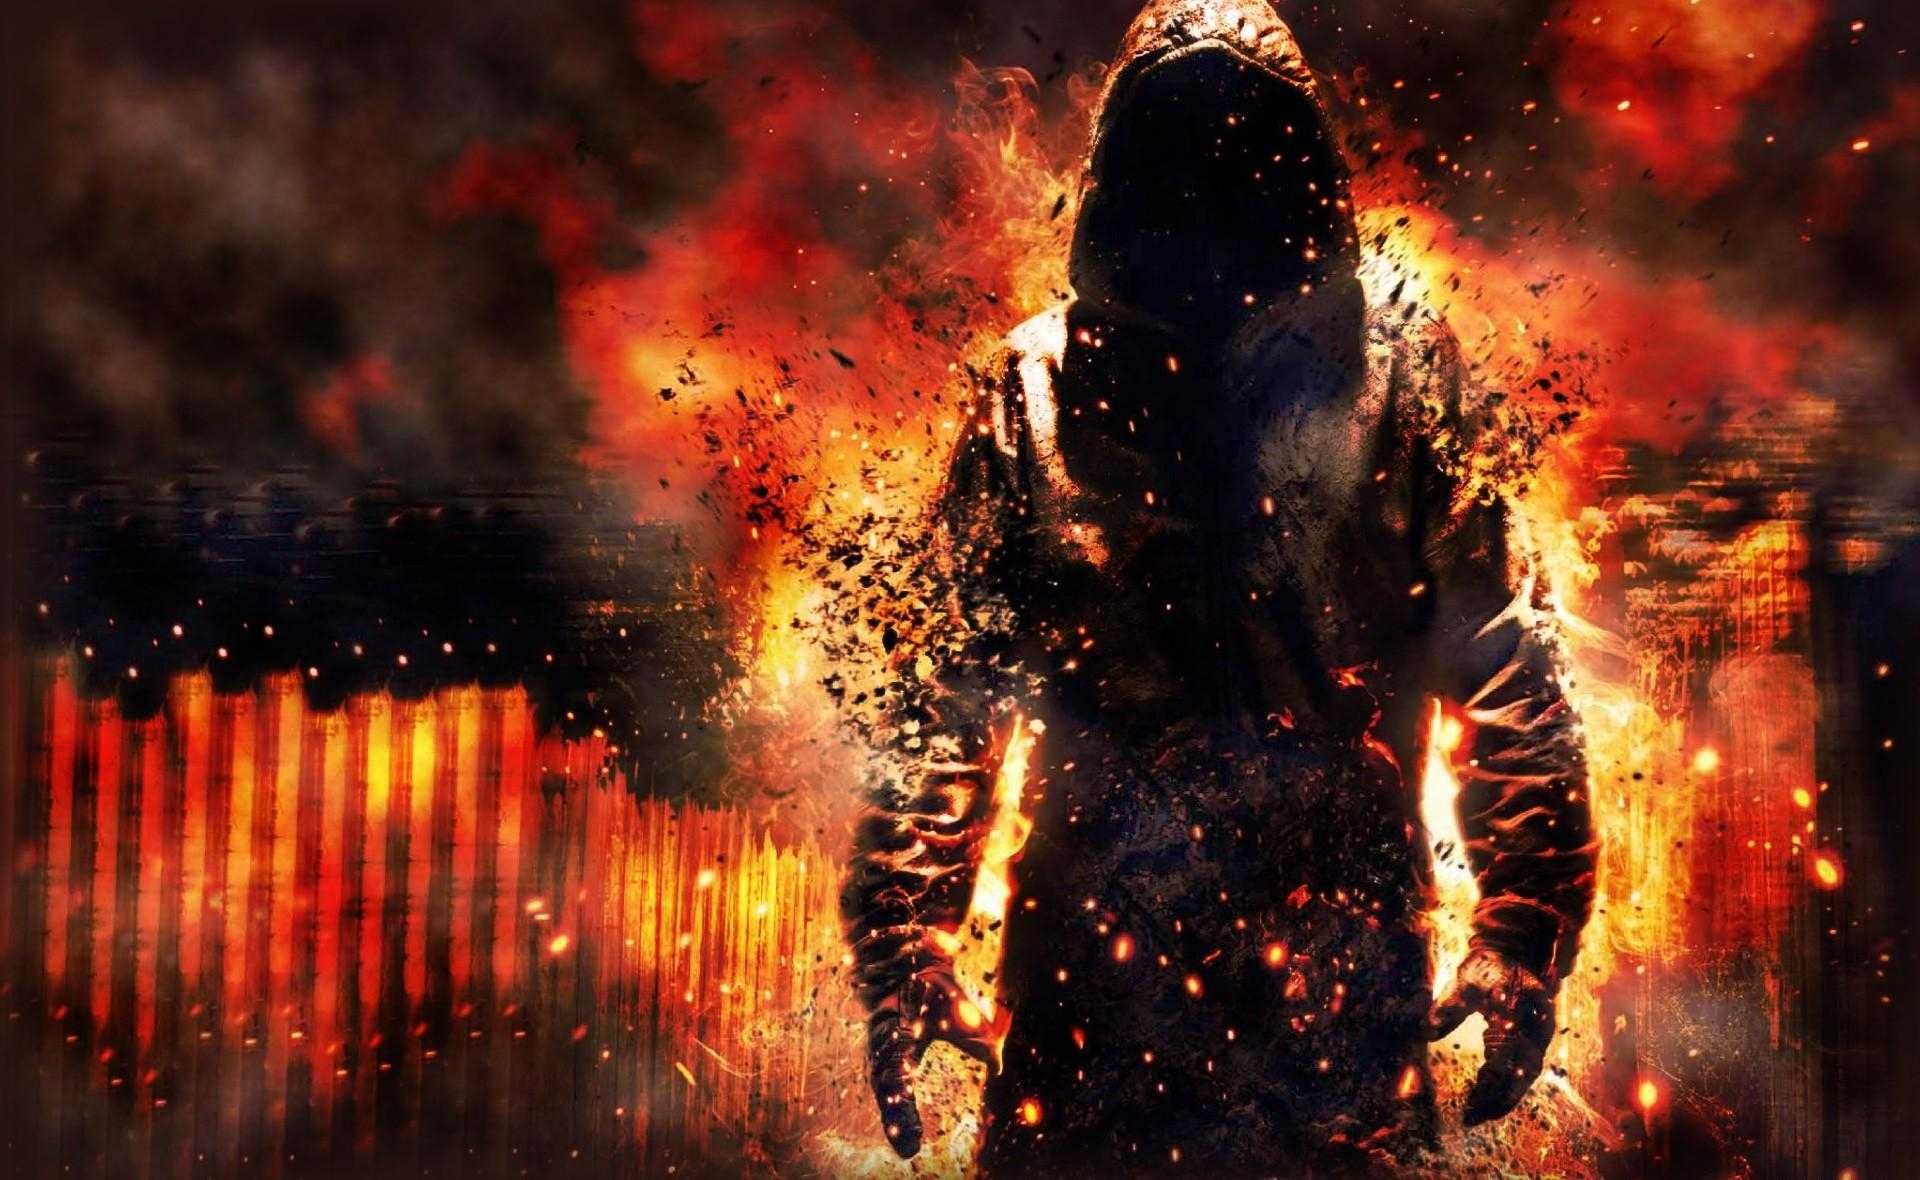 111836 Screensavers and Wallpapers Human for phone. Download Fantasy, Fire, Human, Person, Wreckage, Detritus, Hood, Destruction, Cloak pictures for free